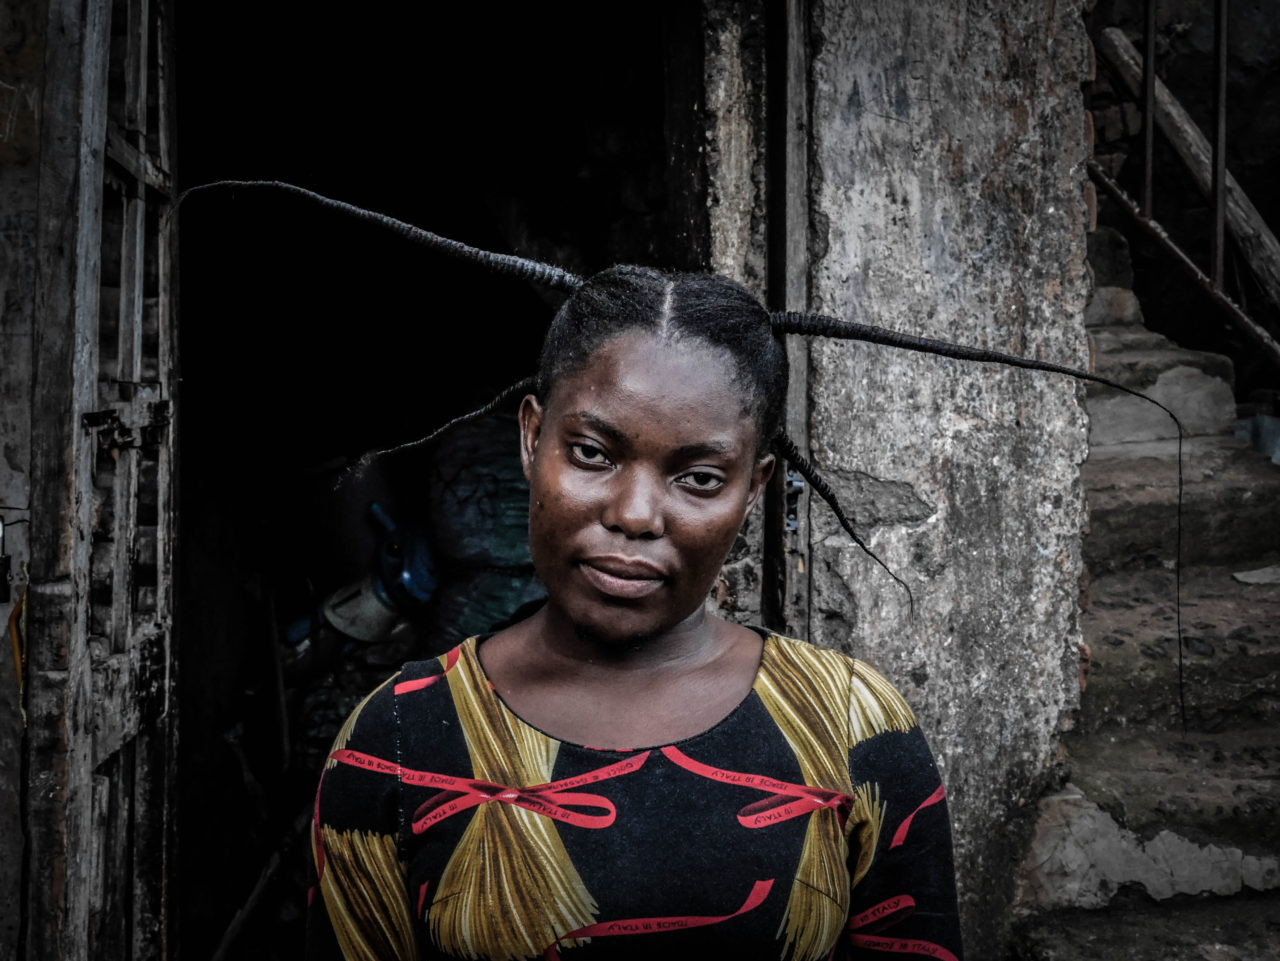 Bukavu, DRC, May 2020. A woman wears a traditional hairstyle in the eastern Congolese city of Bukavu in May. © Raissa Rwizibuka Karama for Fondation Carmignac